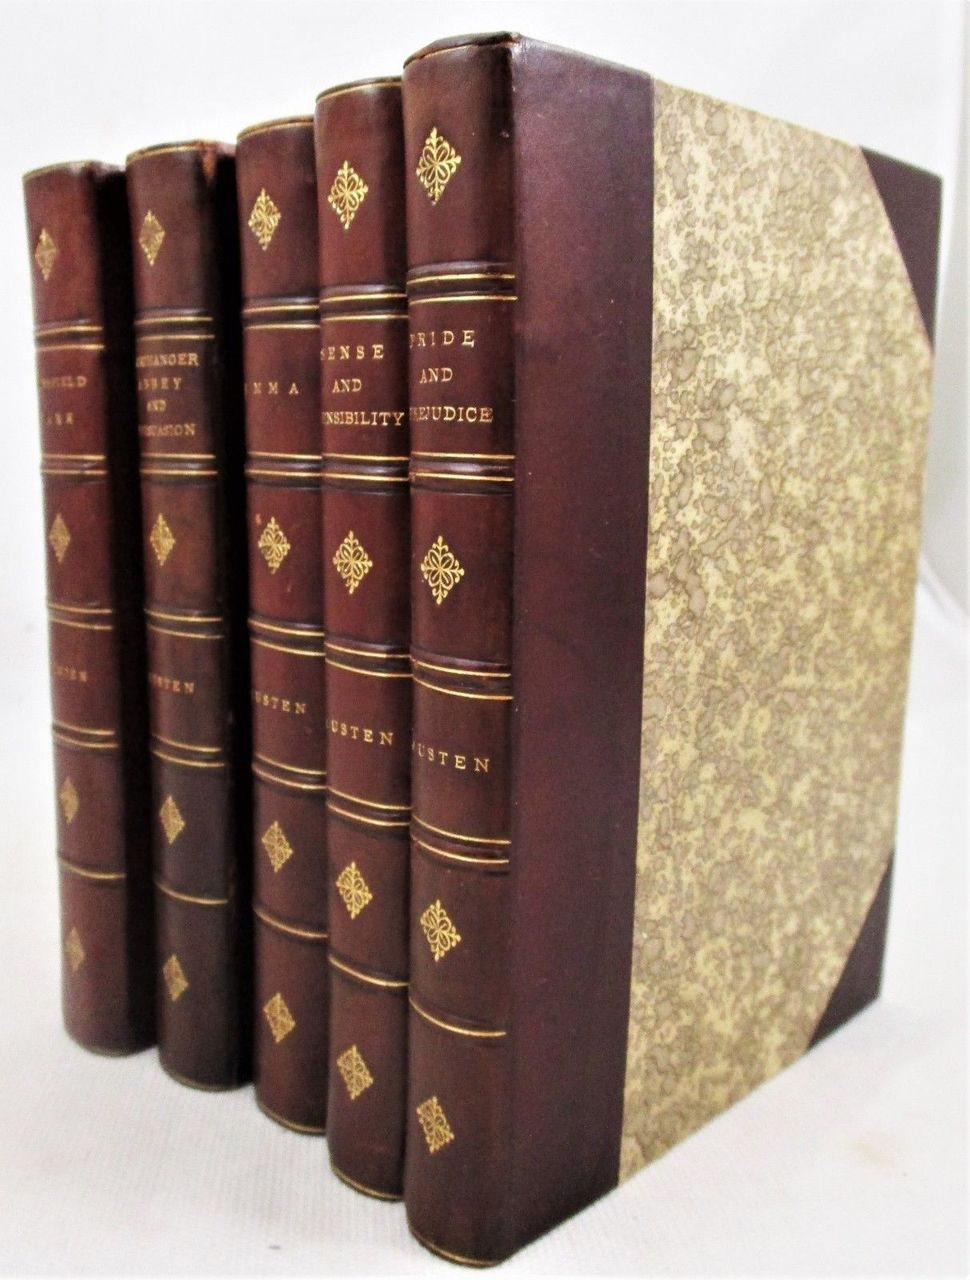 FIVE NOVELS BY JANE AUSTEN - 1888 [5 Vols] Leatherbound Stokes Pride & Prejudice